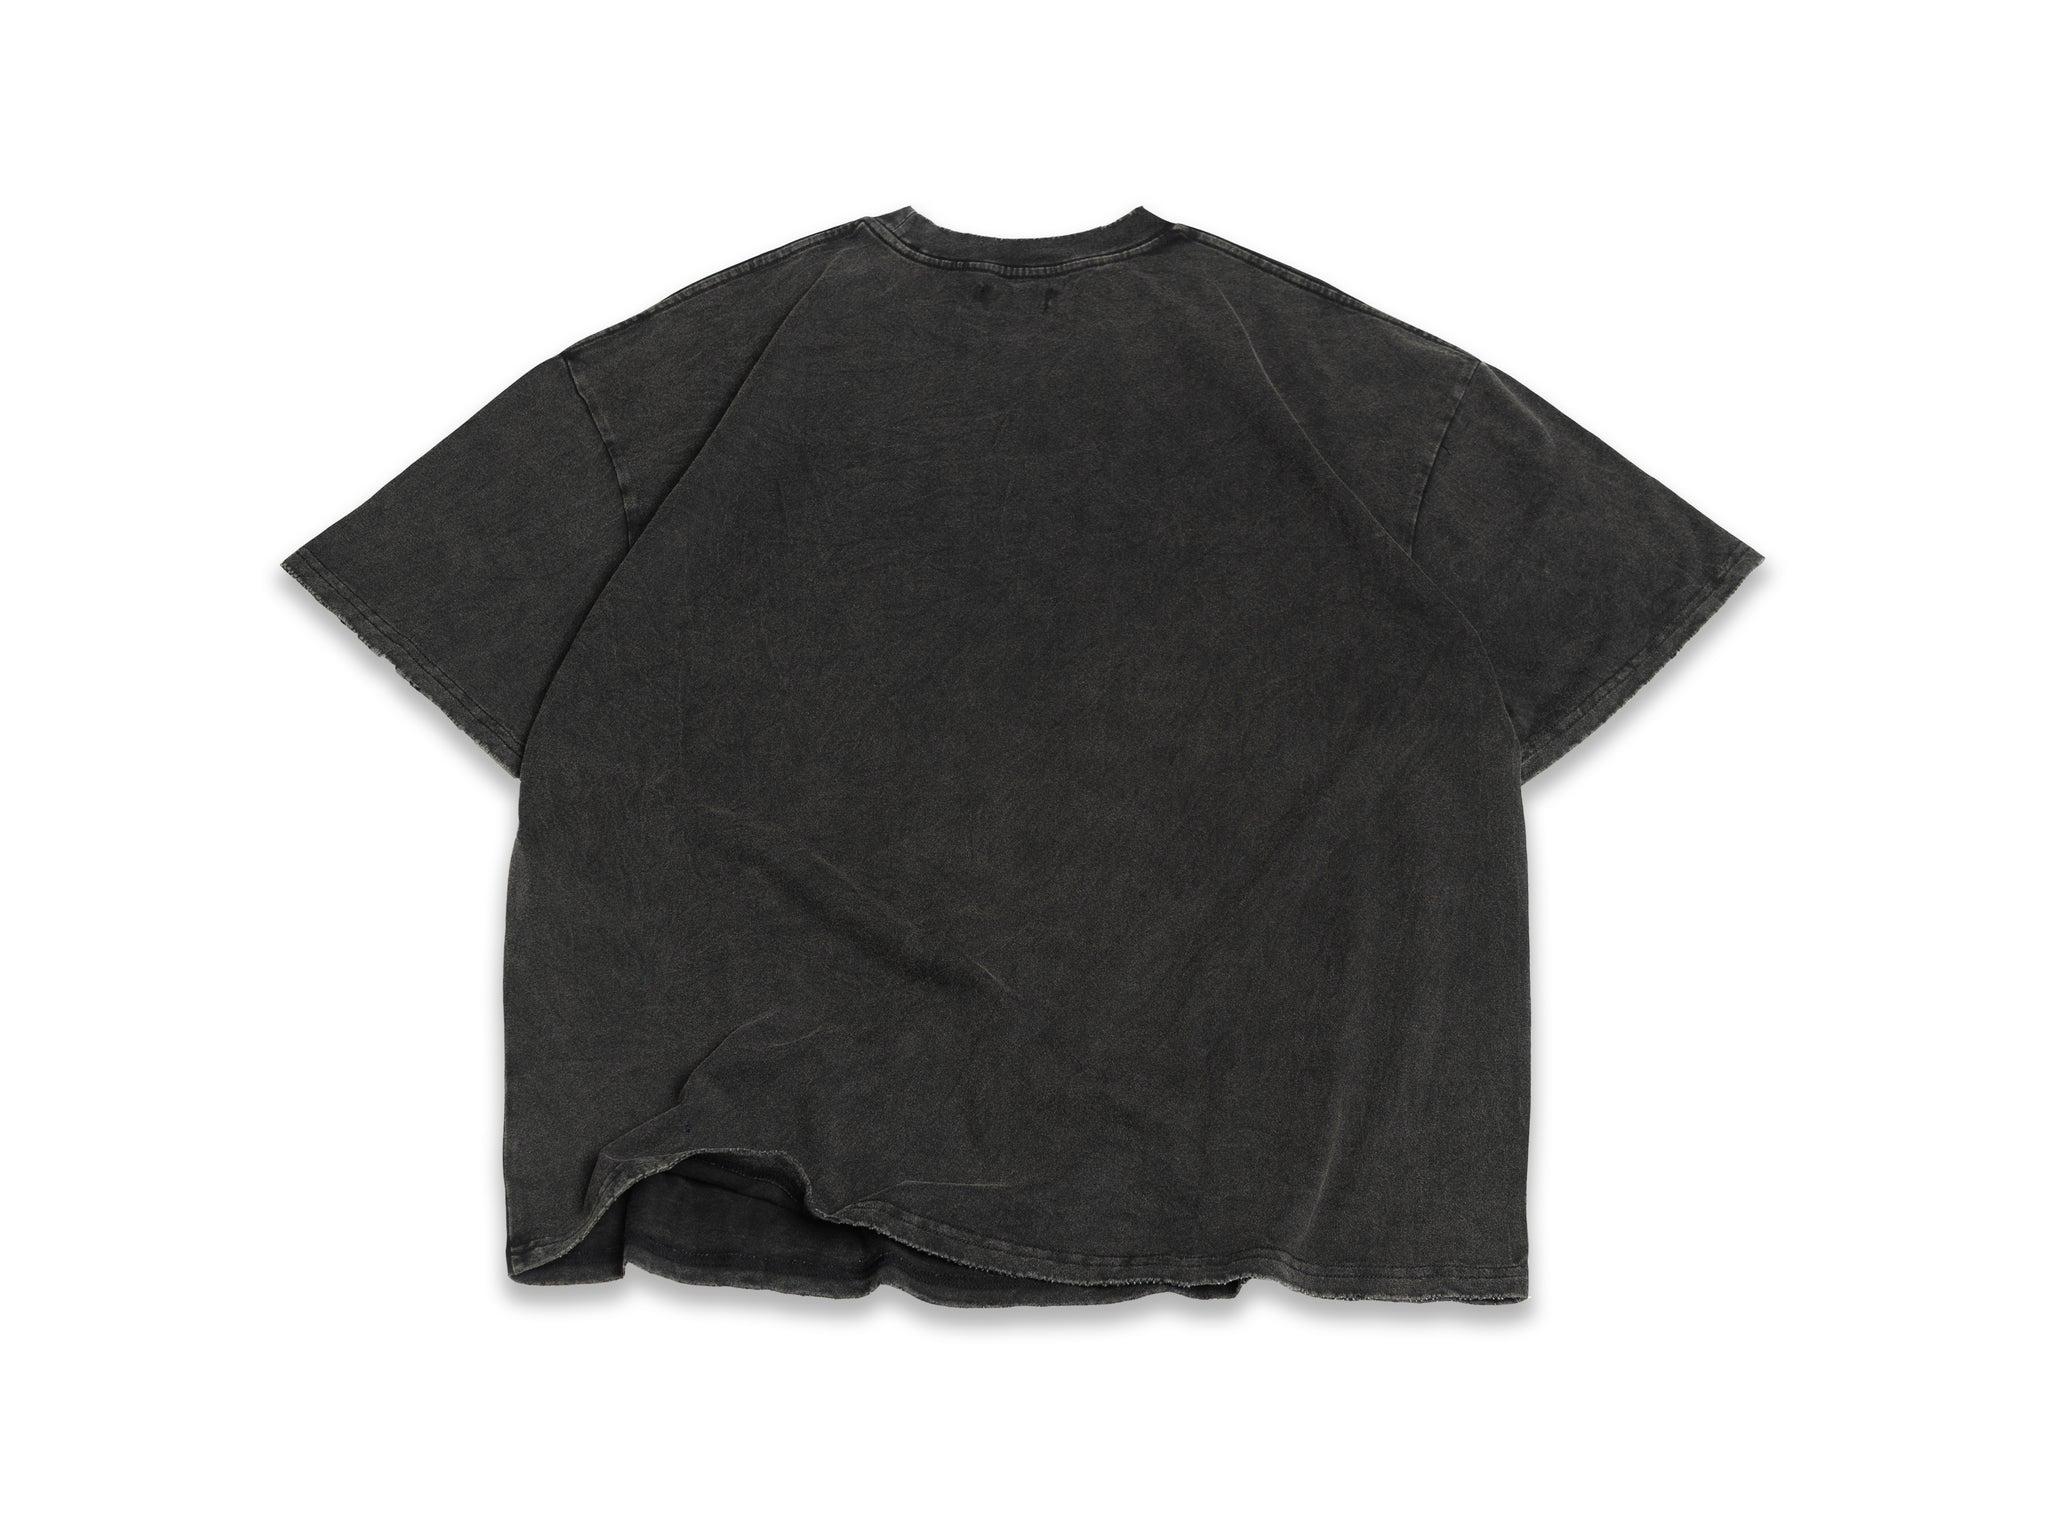 THE PACK TSHIRT - VINTAGE BLACK